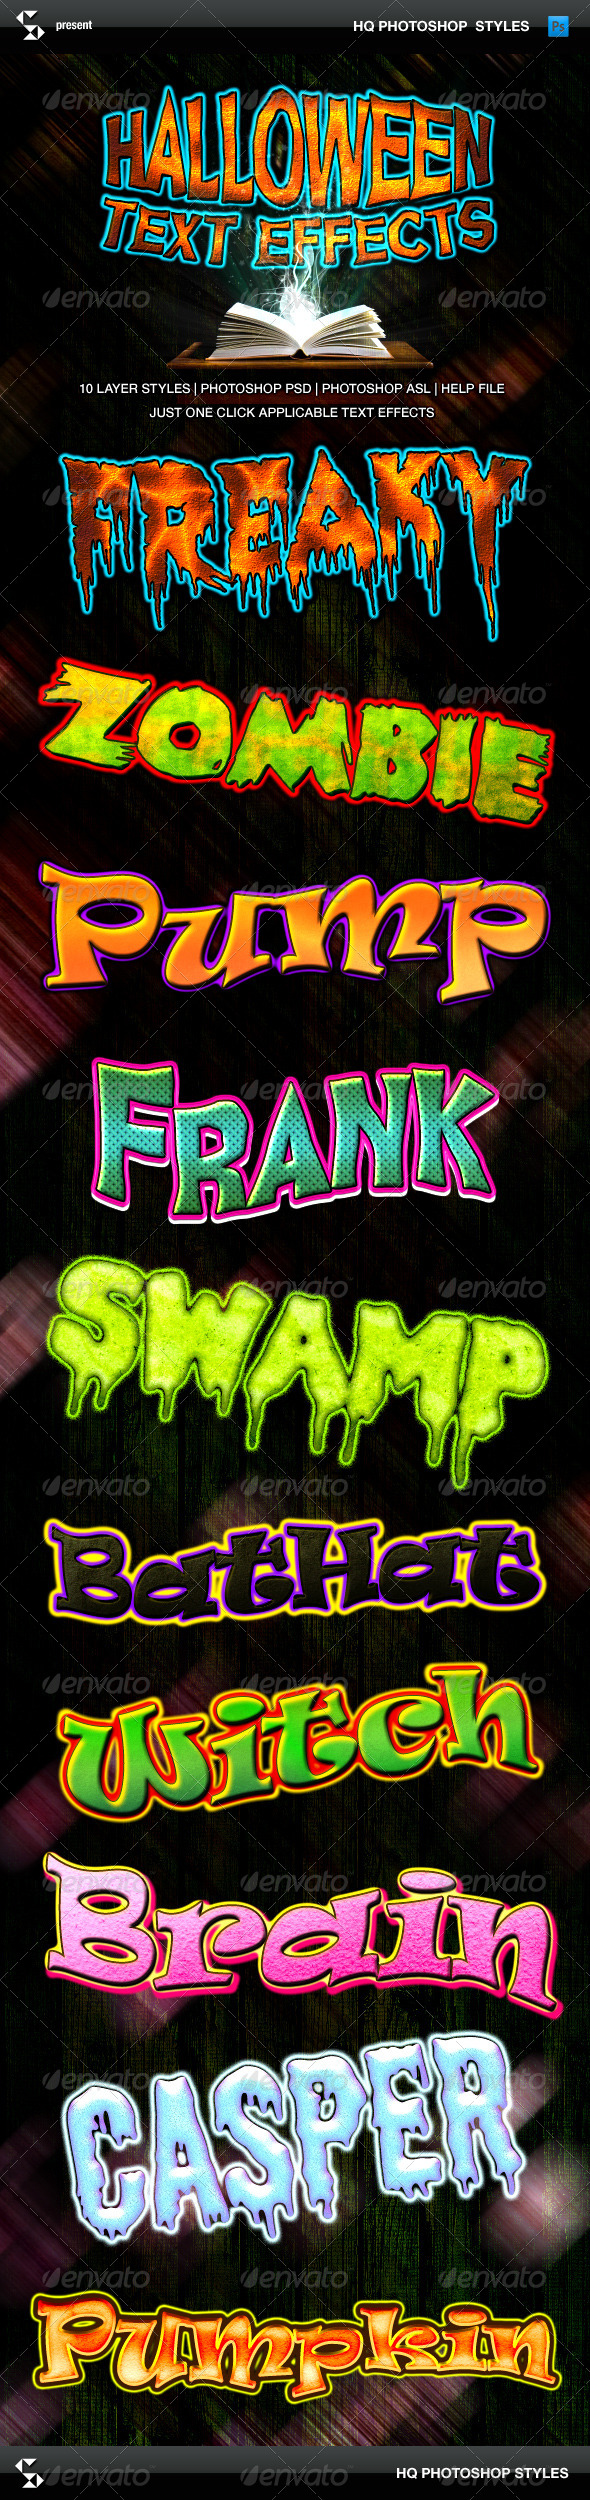 GraphicRiver Halloween Text Effects Cartoon Horror Styles 8770691